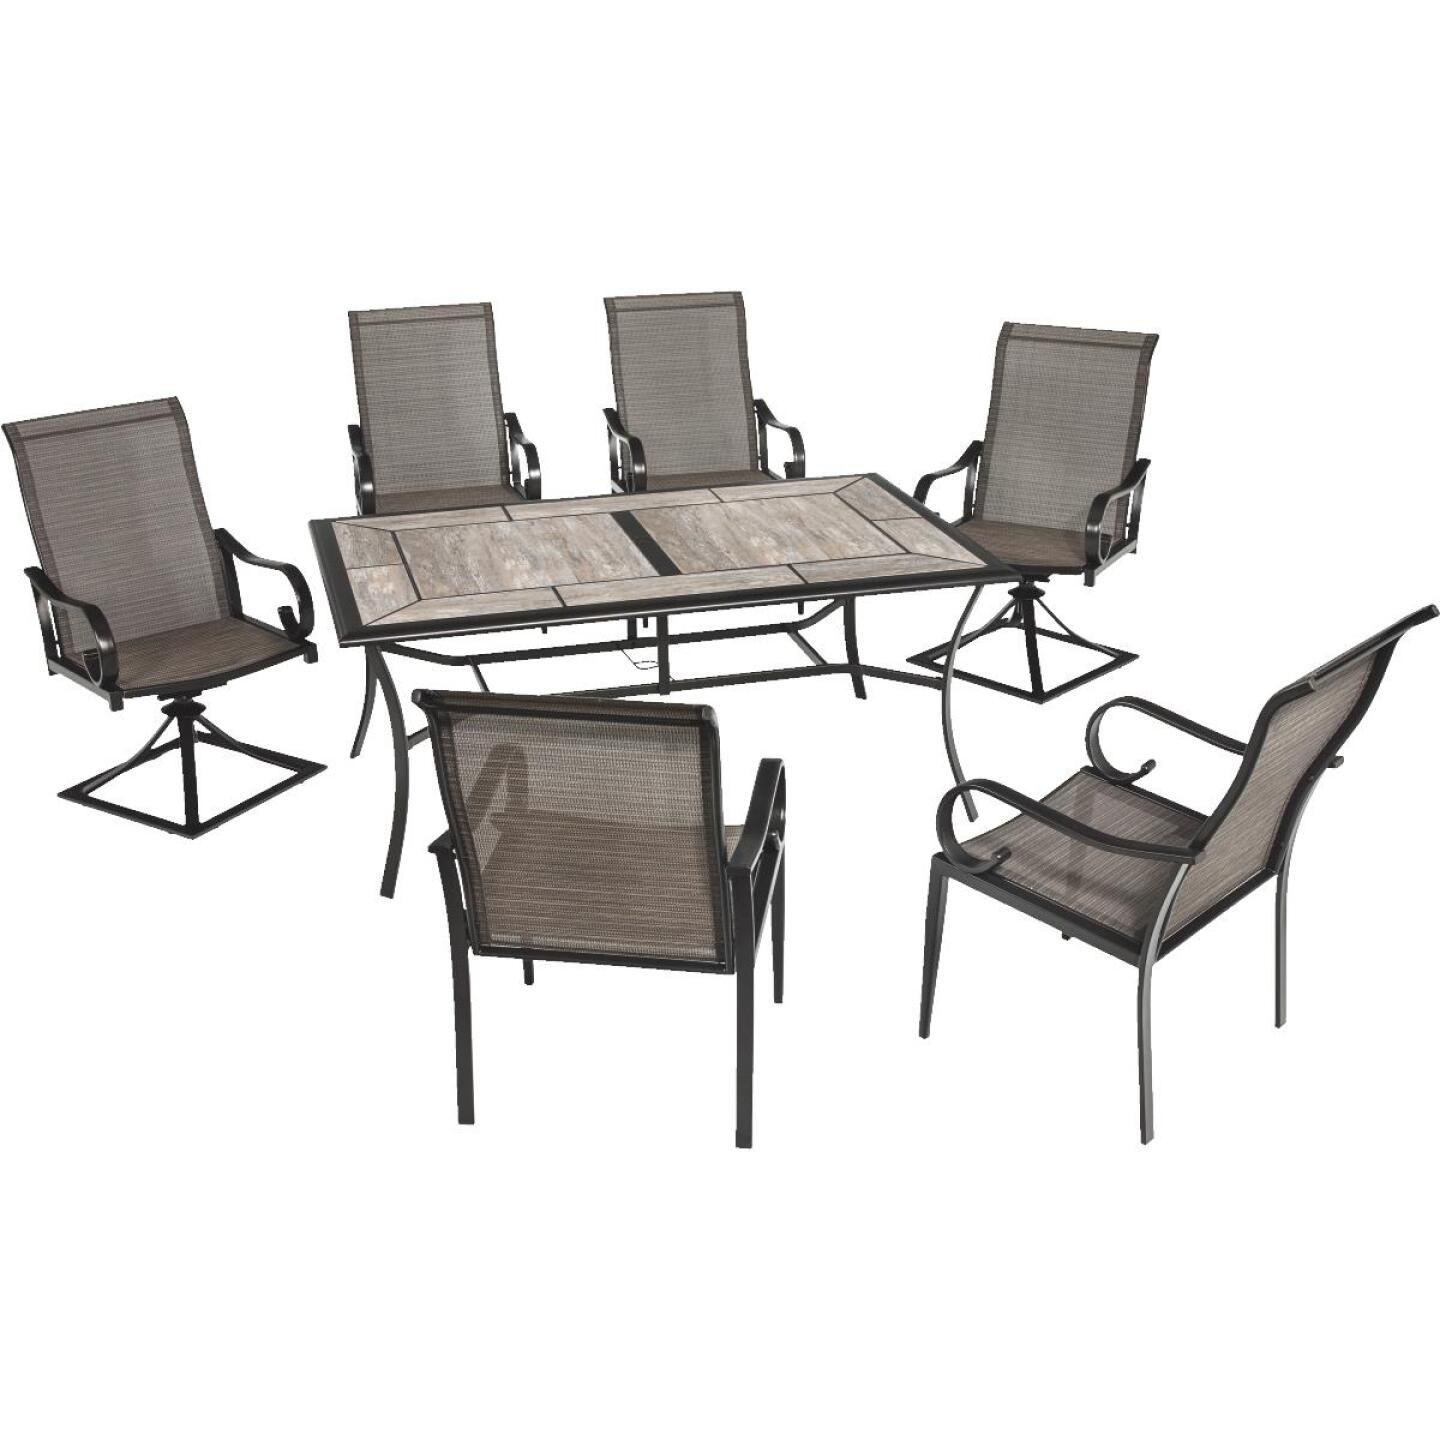 Outdoor Expressions Berkshire 7-Piece Dining Set Image 92